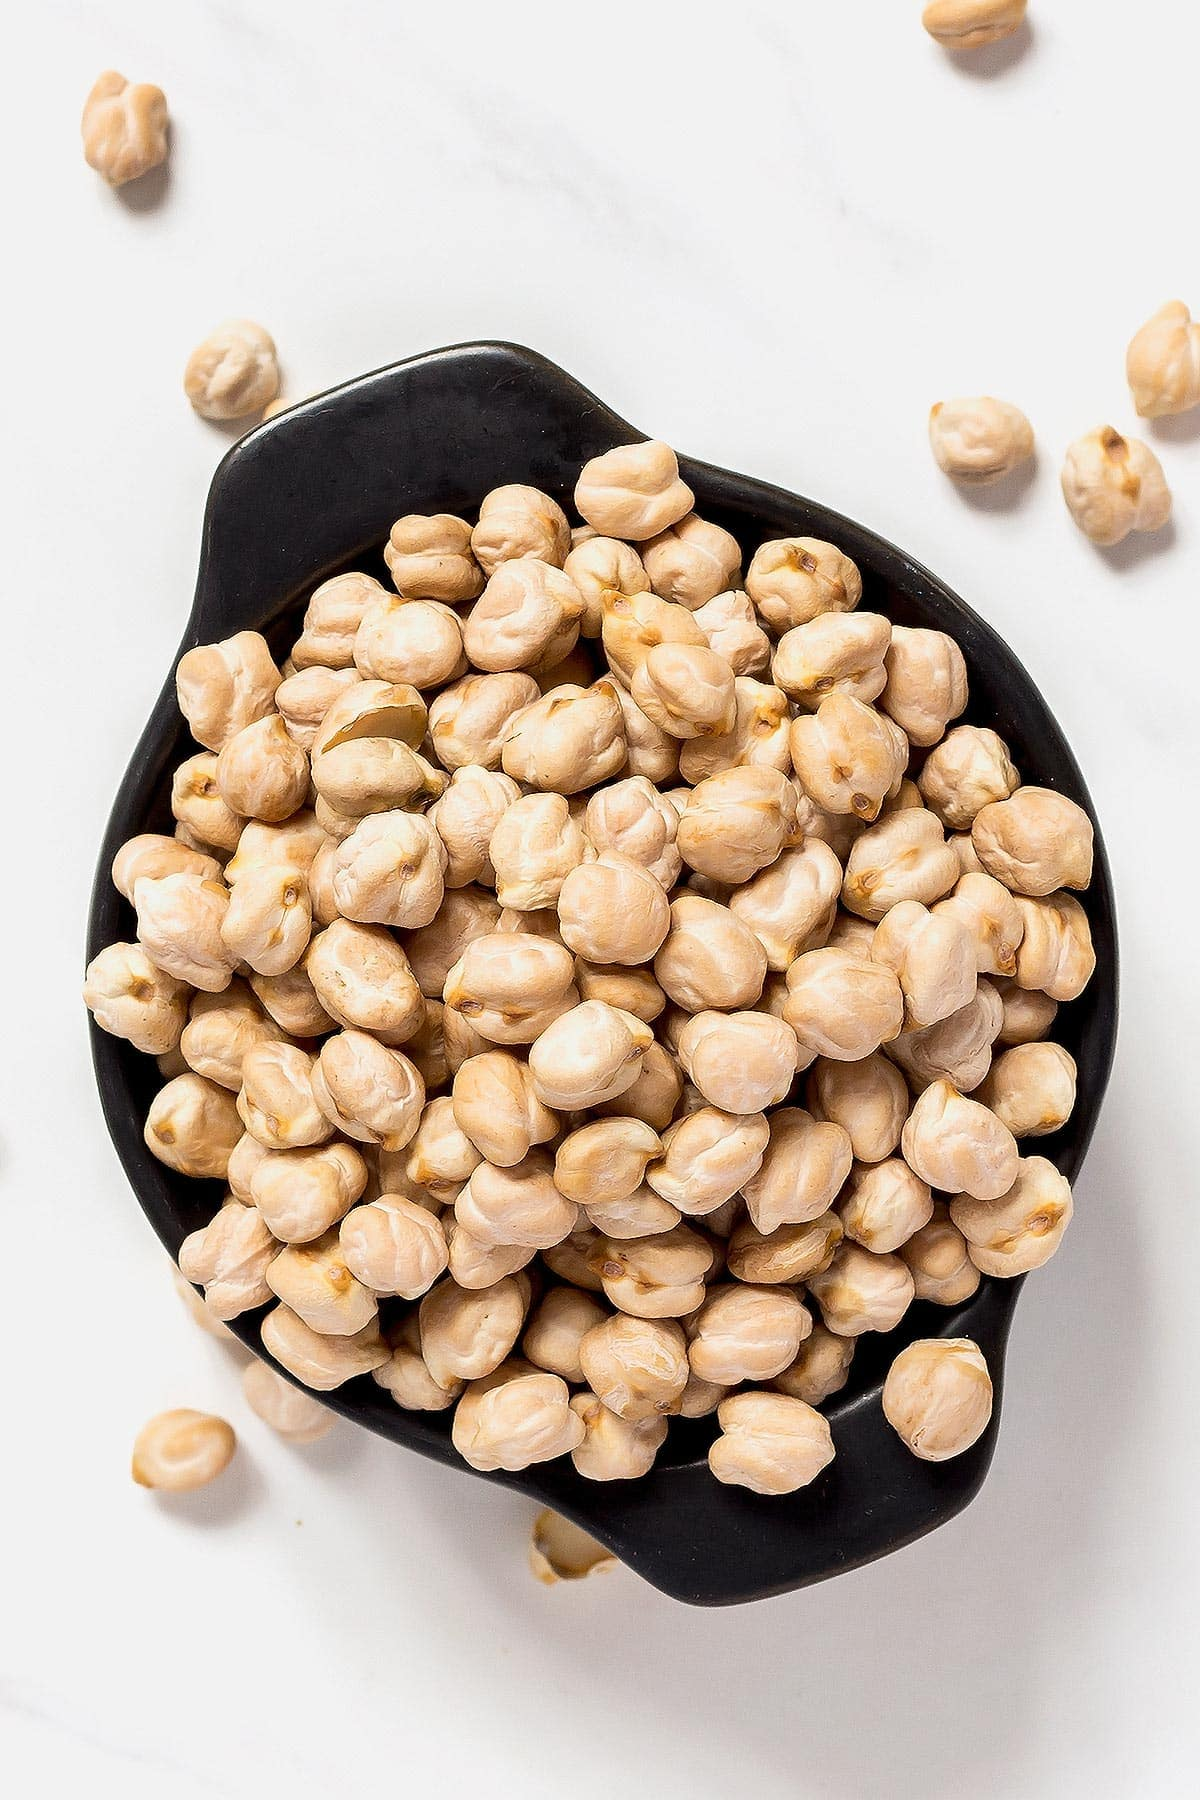 Dry Garbanzo beans in bowl